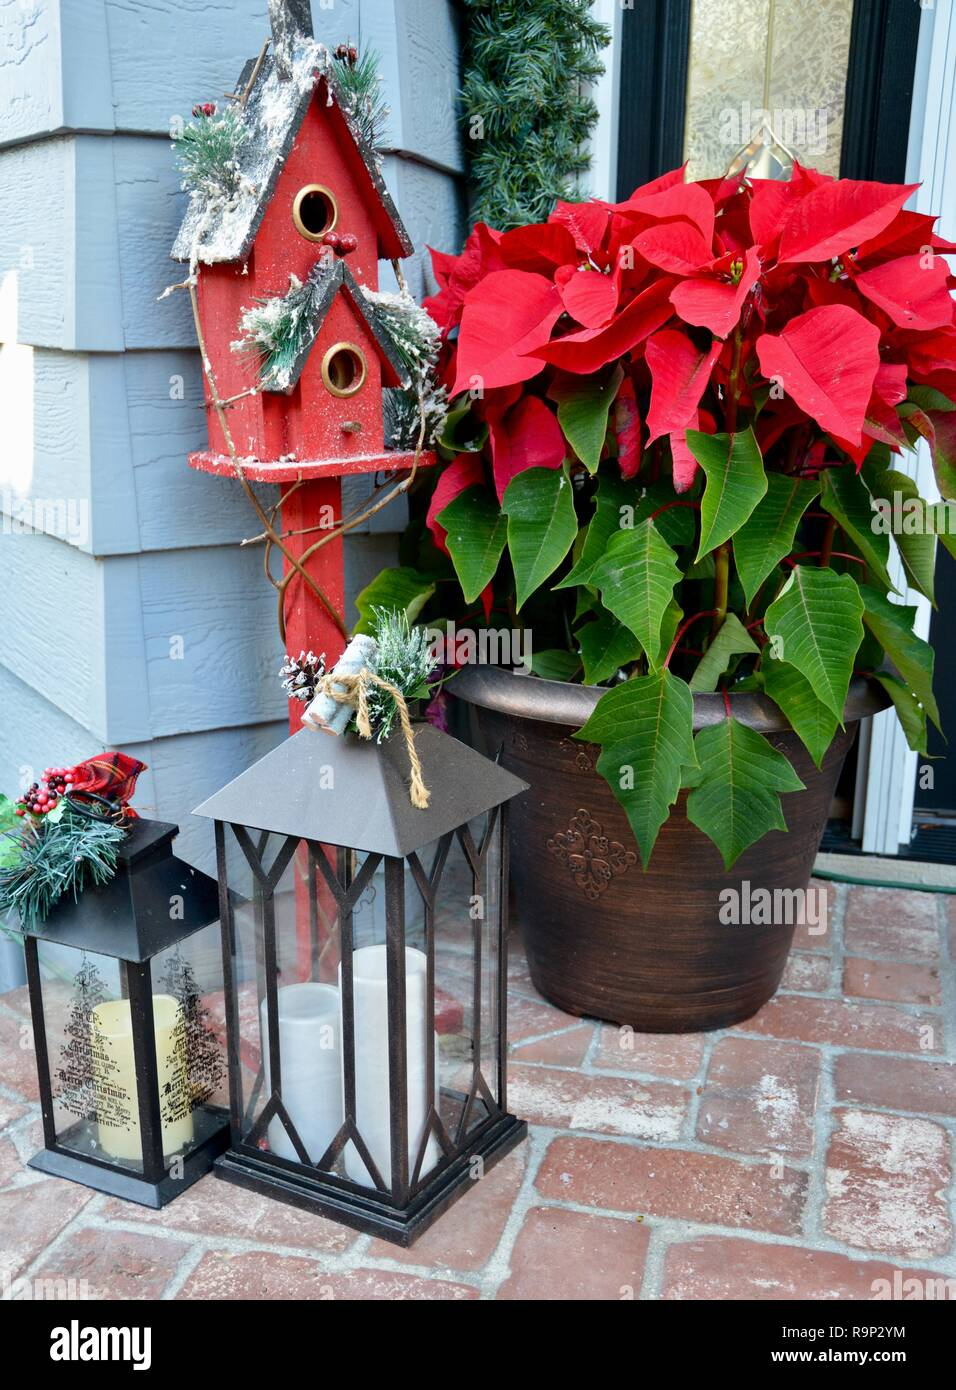 Festive winter holiday decorations welcome guests with traditional Christmas-themed elements, such as poinsettias, a red birdhouse and lanterns. - Stock Image